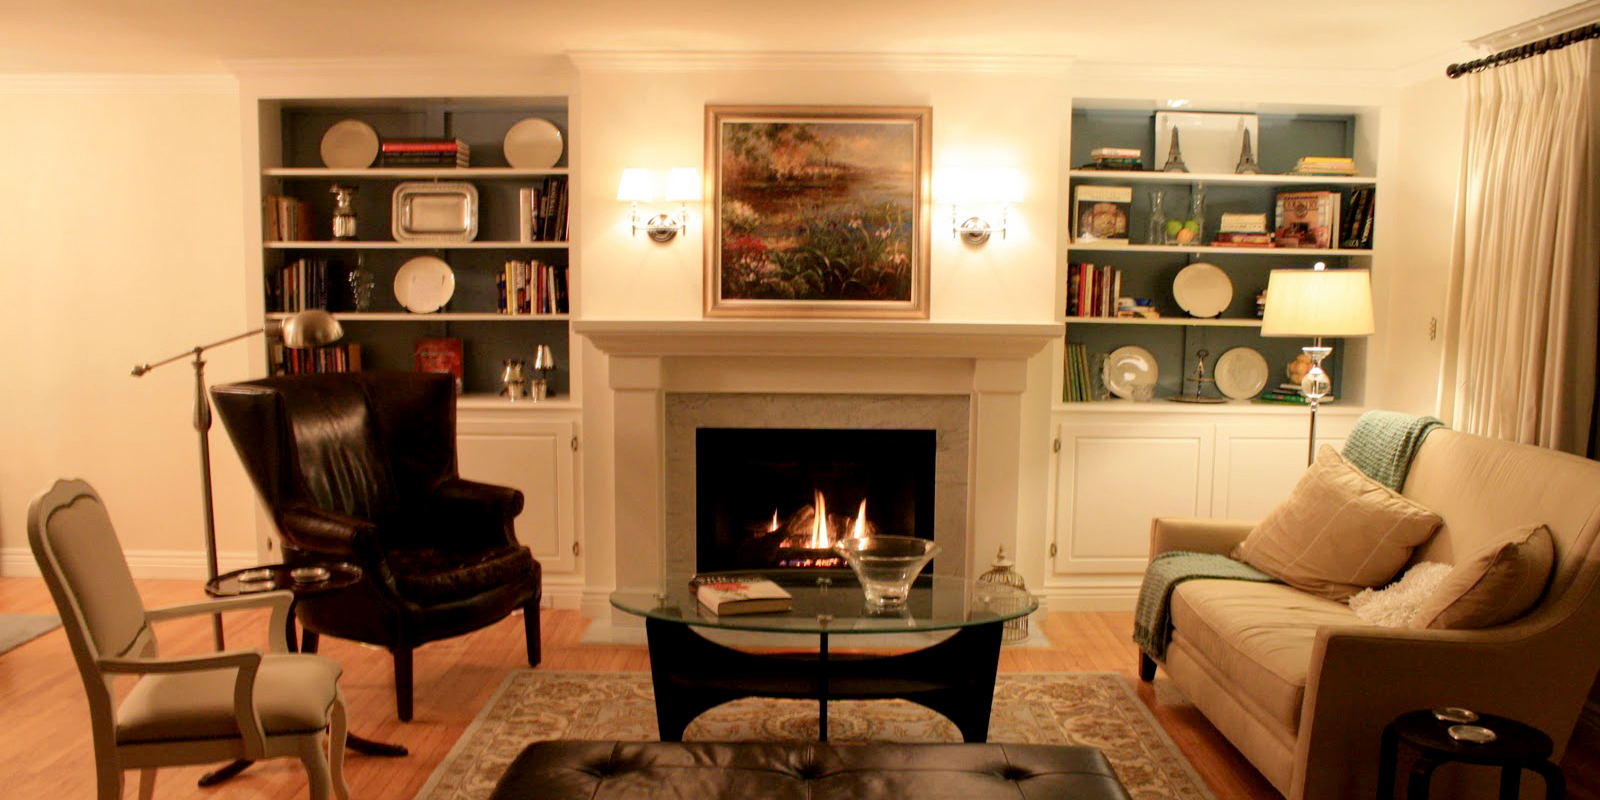 Remodelaholic living room remodel adding a fireplace and built in bookshelves How to design a living room with a fireplace